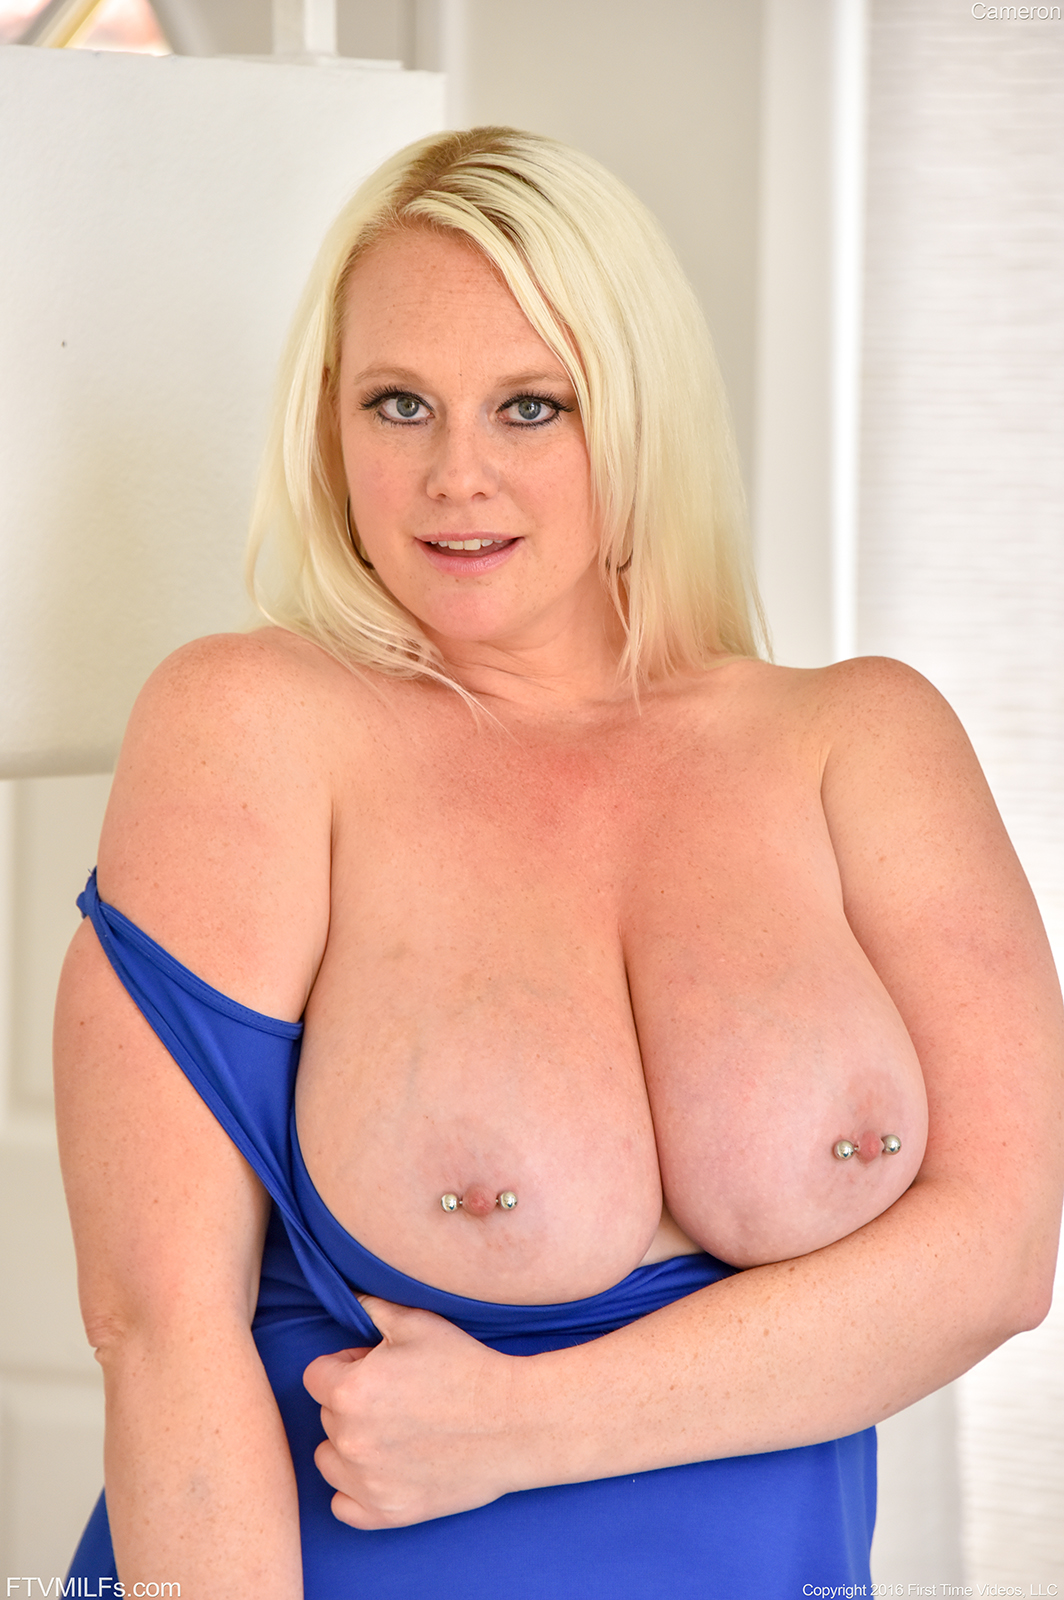 Busty Natural First Porn ftv milfs cameron in curvy busty natural - milf porn photos